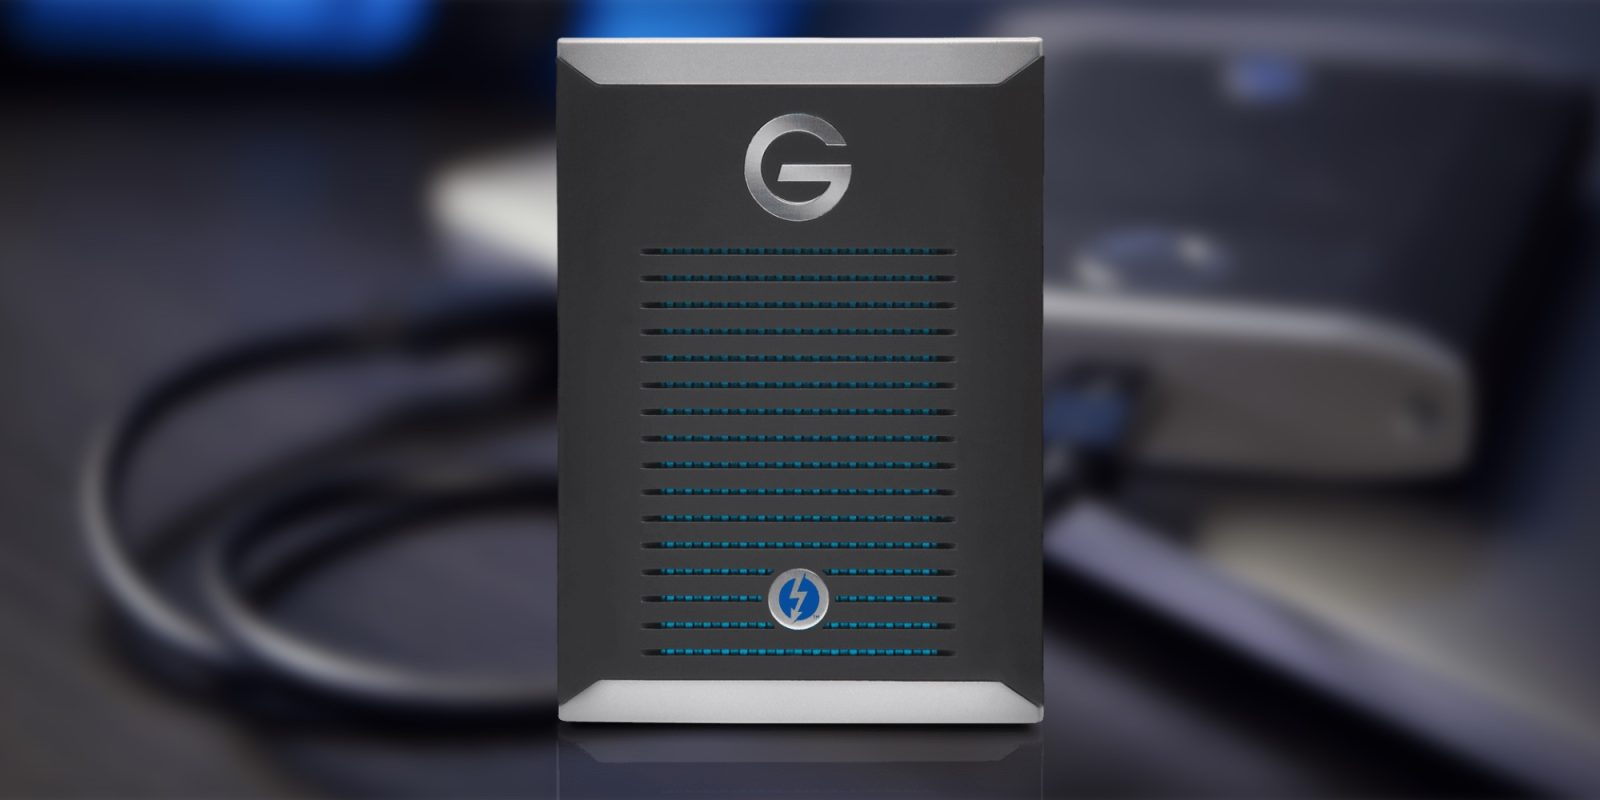 Enjoy 2.8GB/s speeds w/ G-DRIVE's 1TB Mobile Thunderbolt 3 SSD up to $180 off